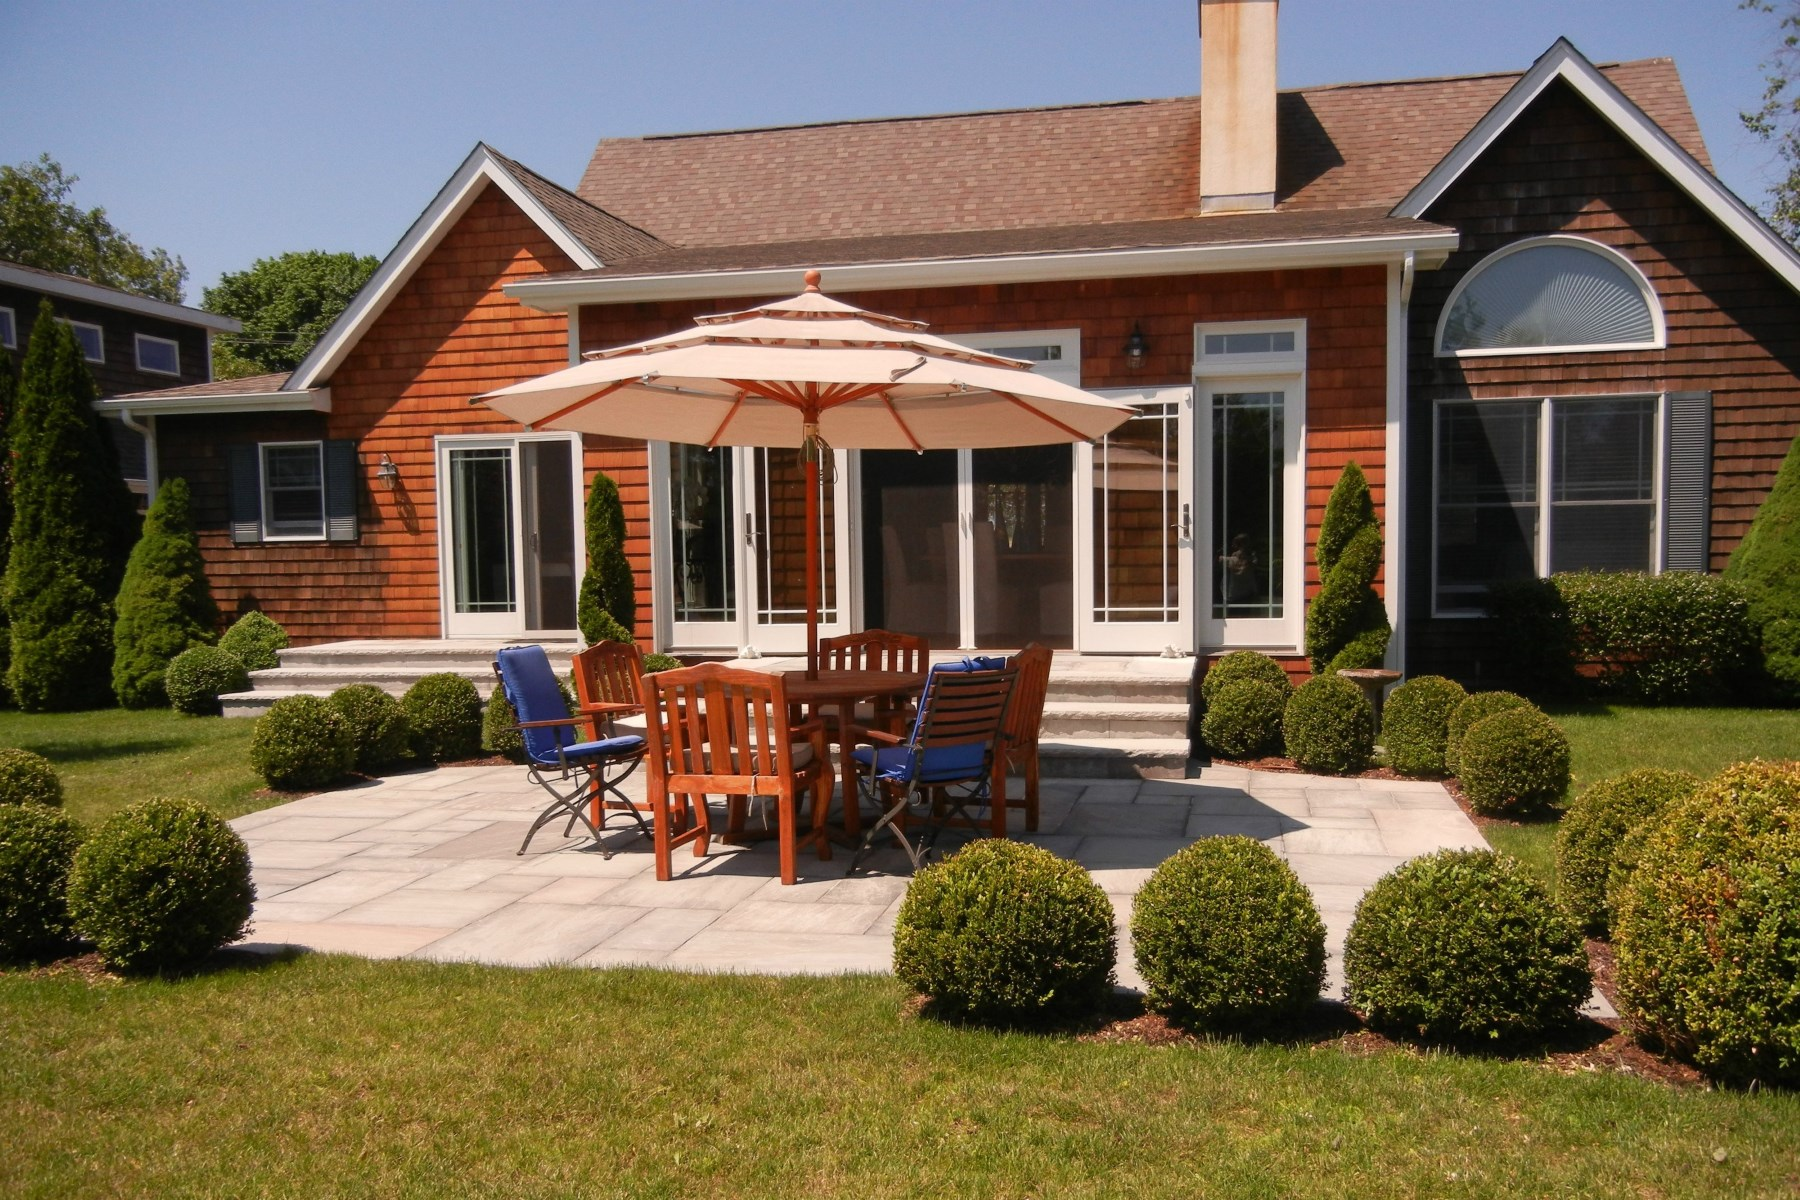 Single Family Home for Rent at Water Mill North Water Mill, New York 11976 United States